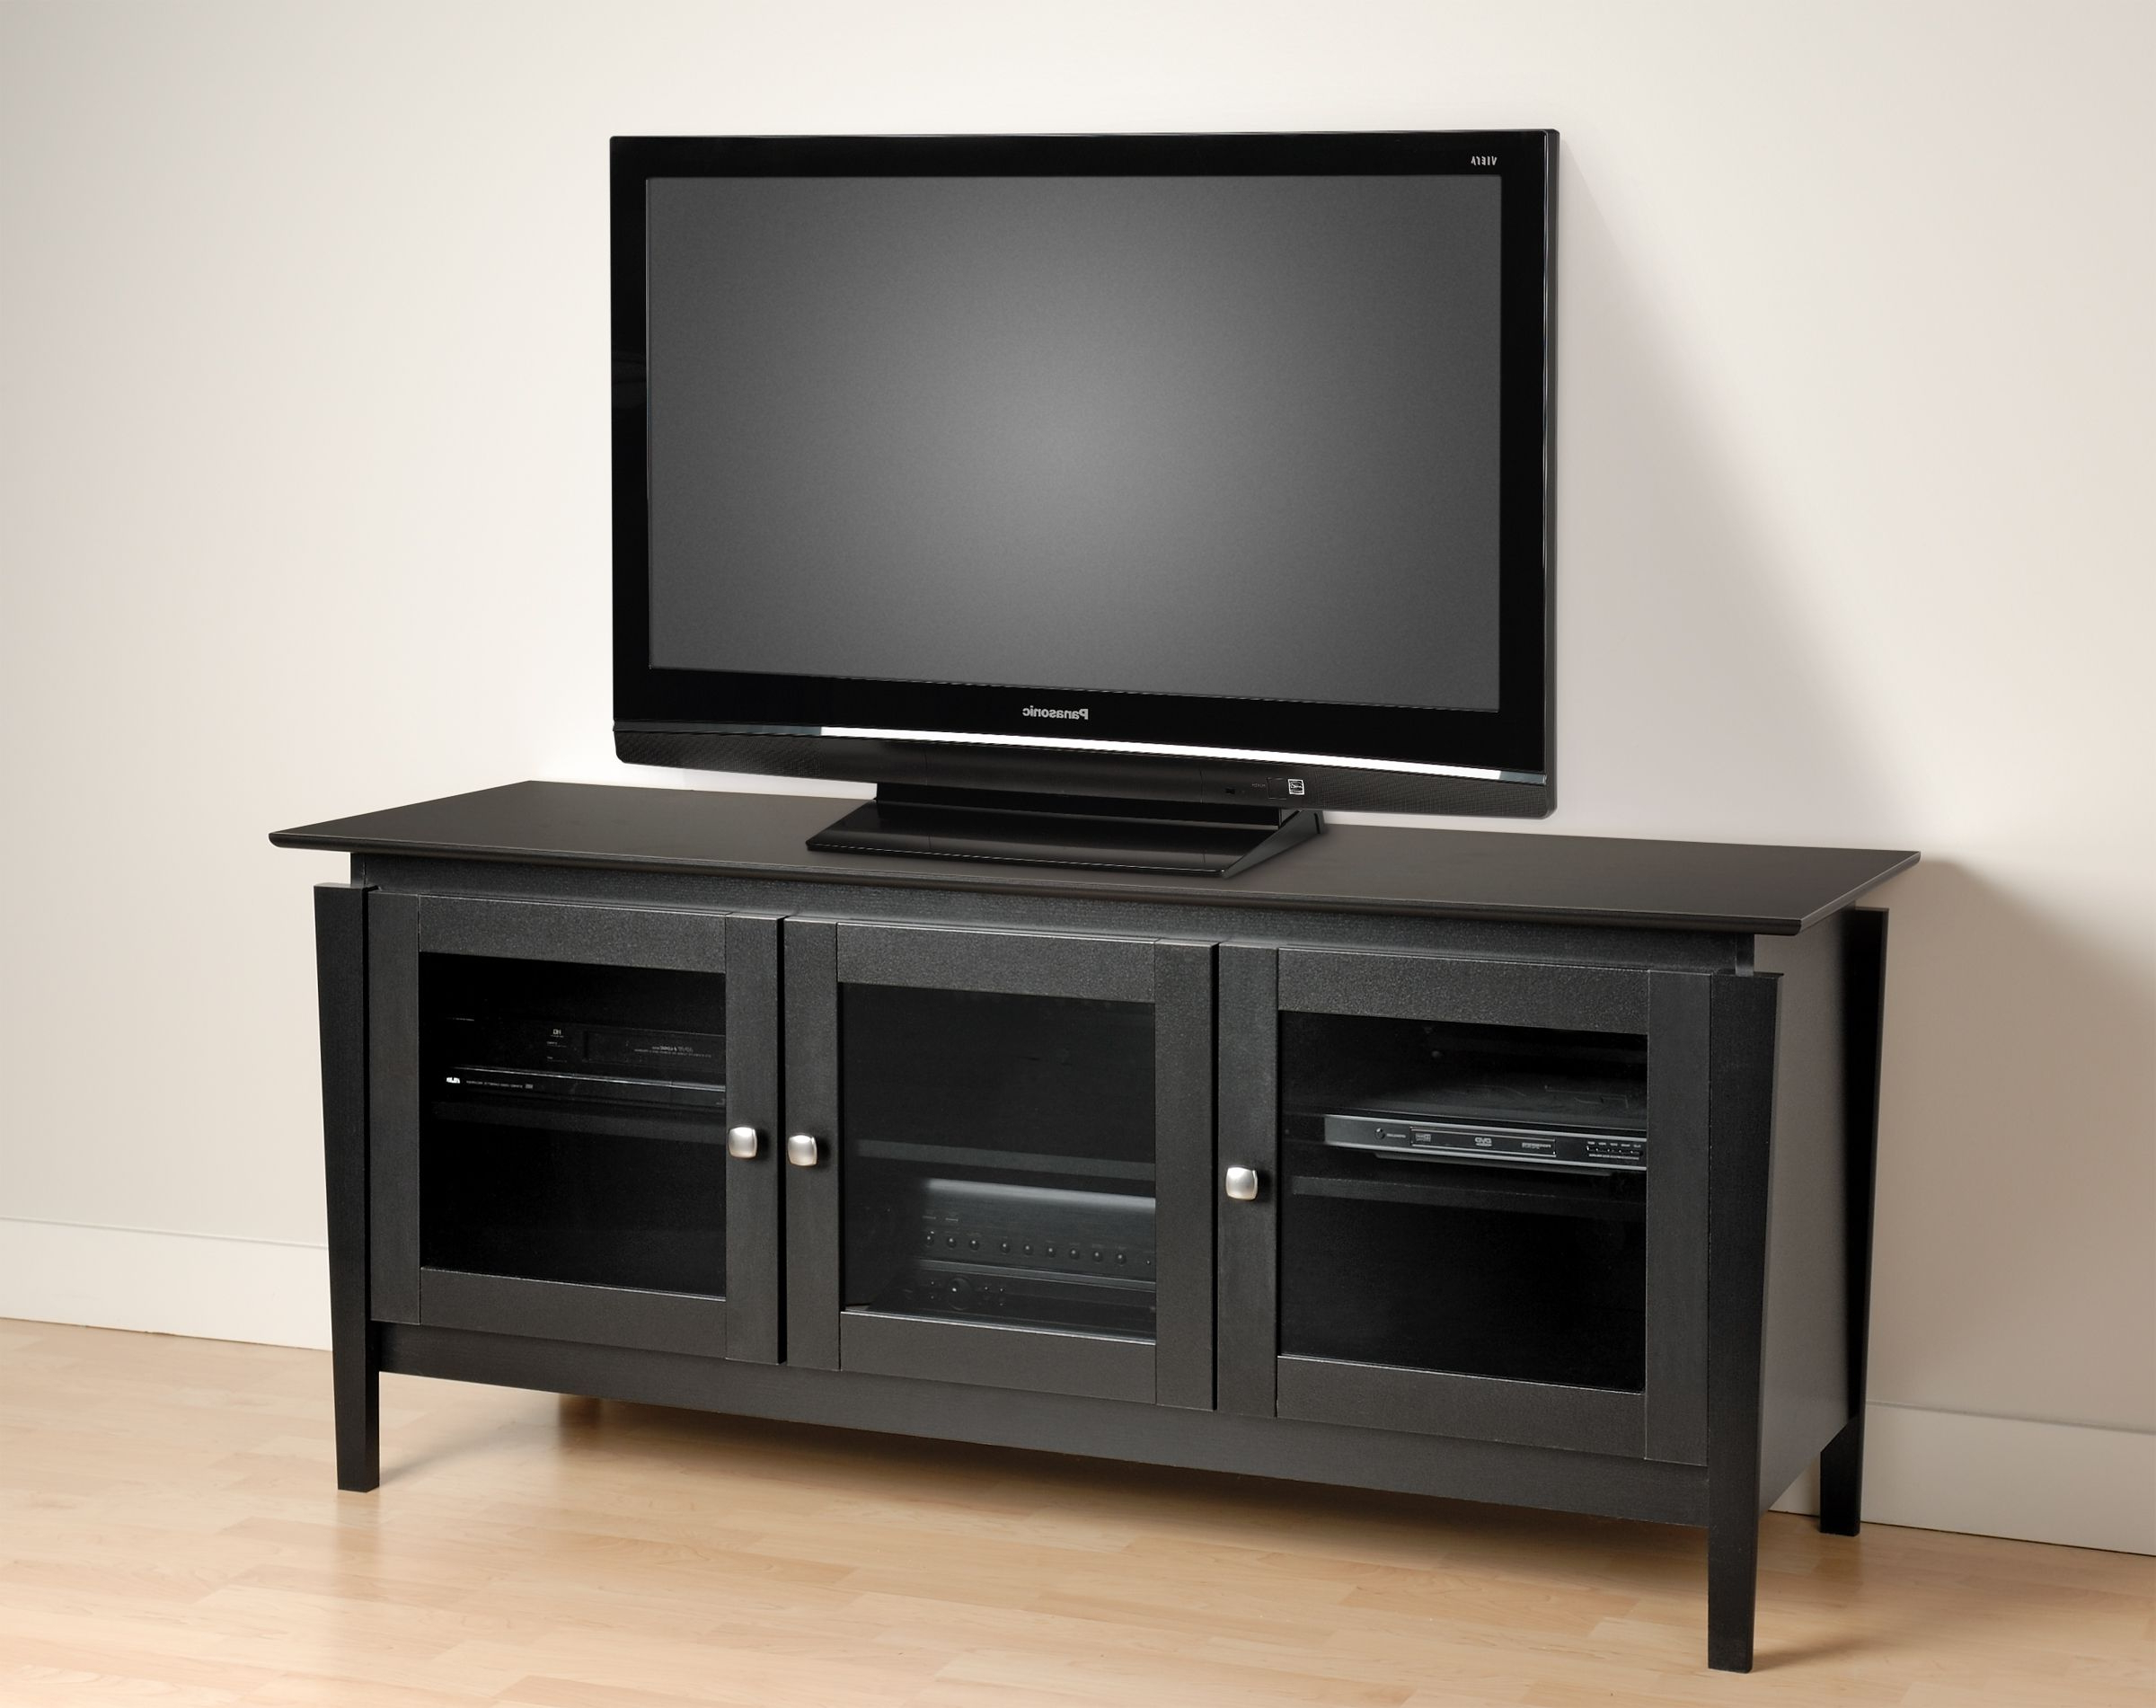 Http://advice Tips Intended For Black Tv Stand With Glass Doors (Gallery 4 of 20)